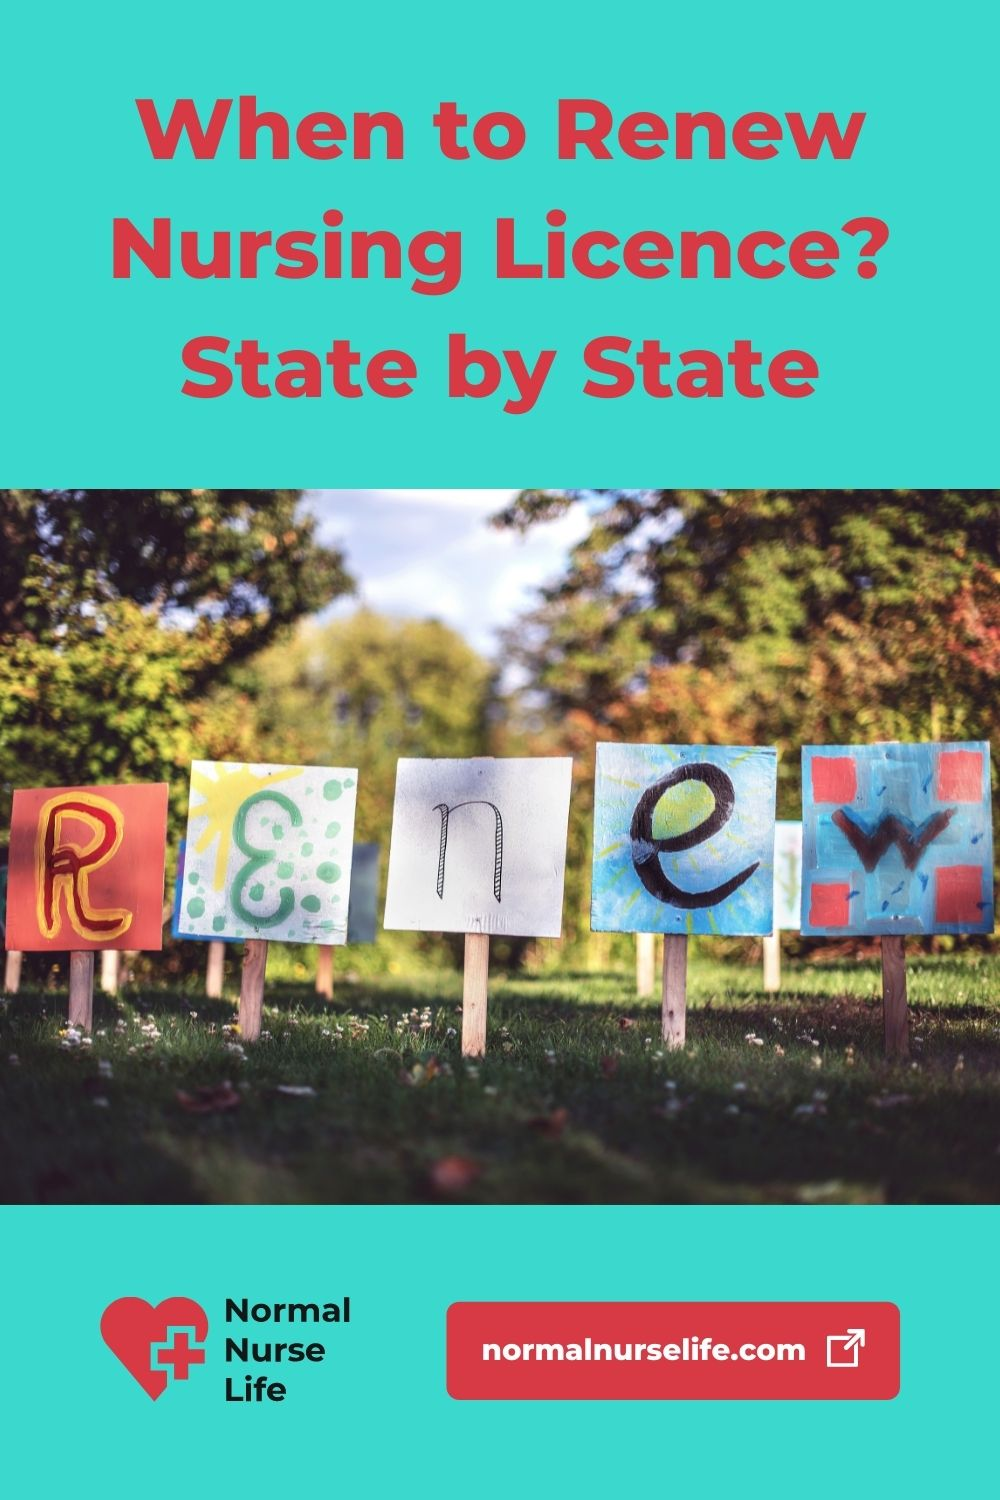 When to renew a nursing license? State by state